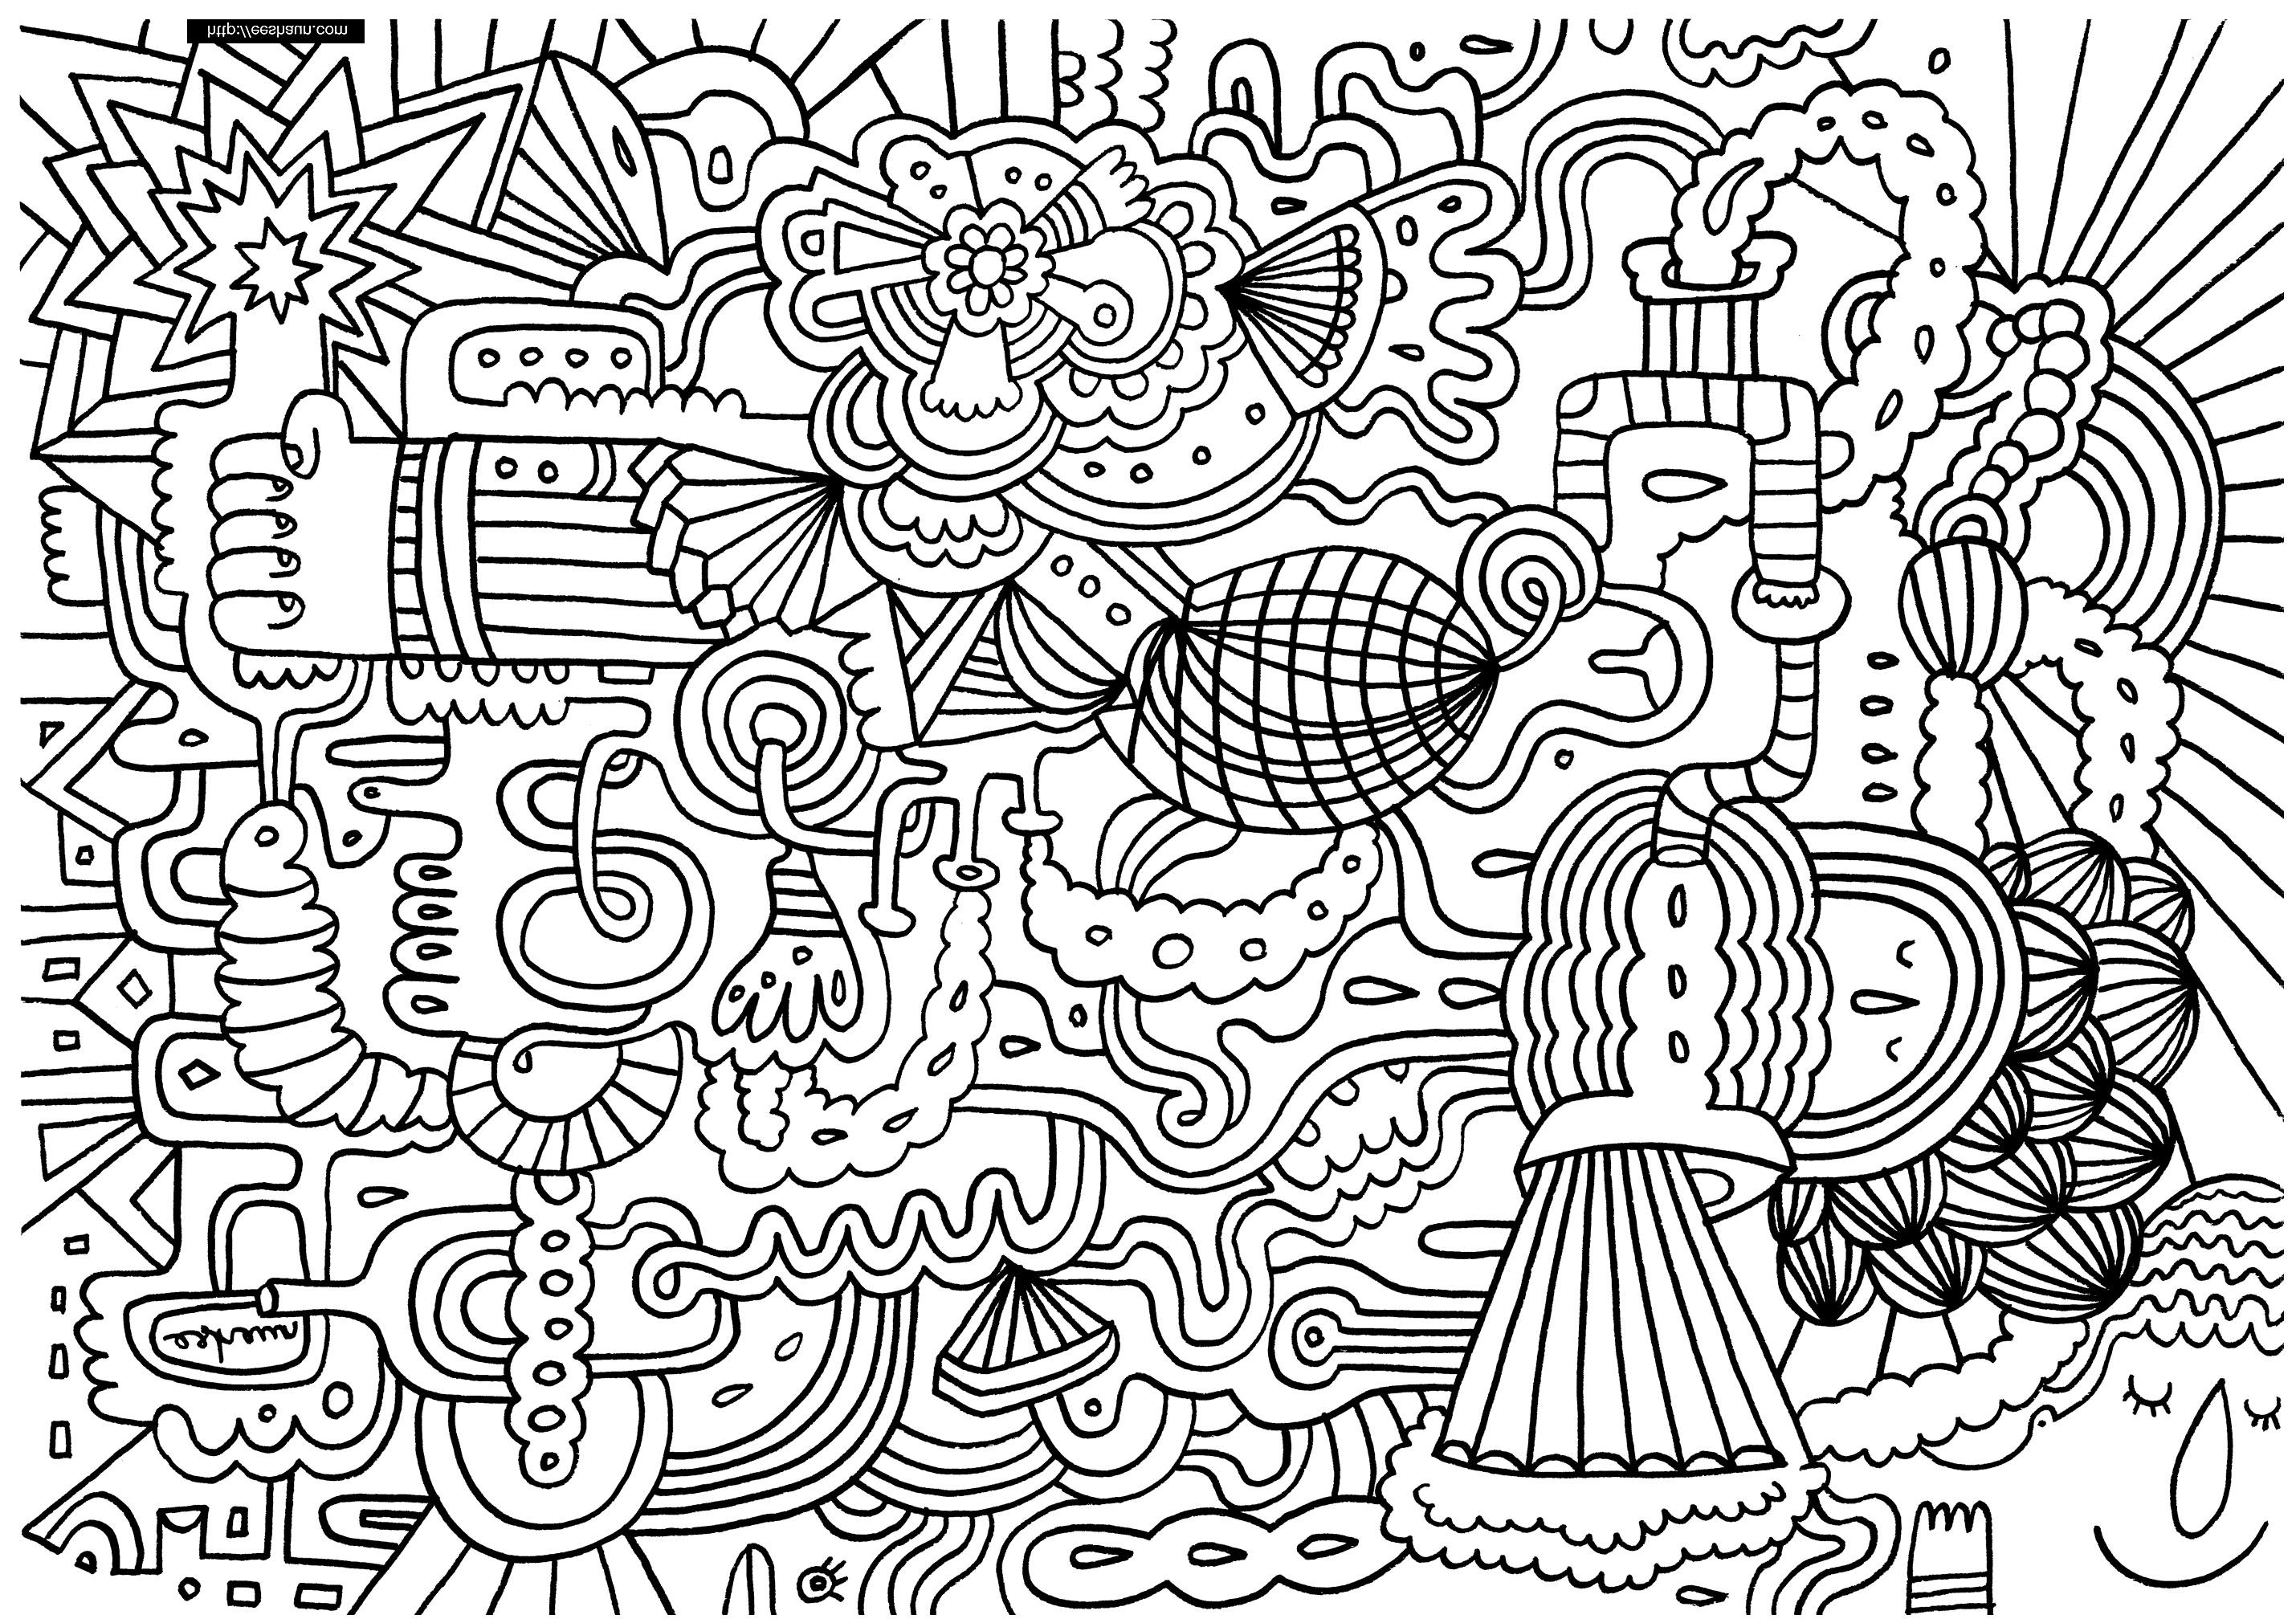 doodle art colouring the arts coloring pages and printables classroom doodles colouring doodle art